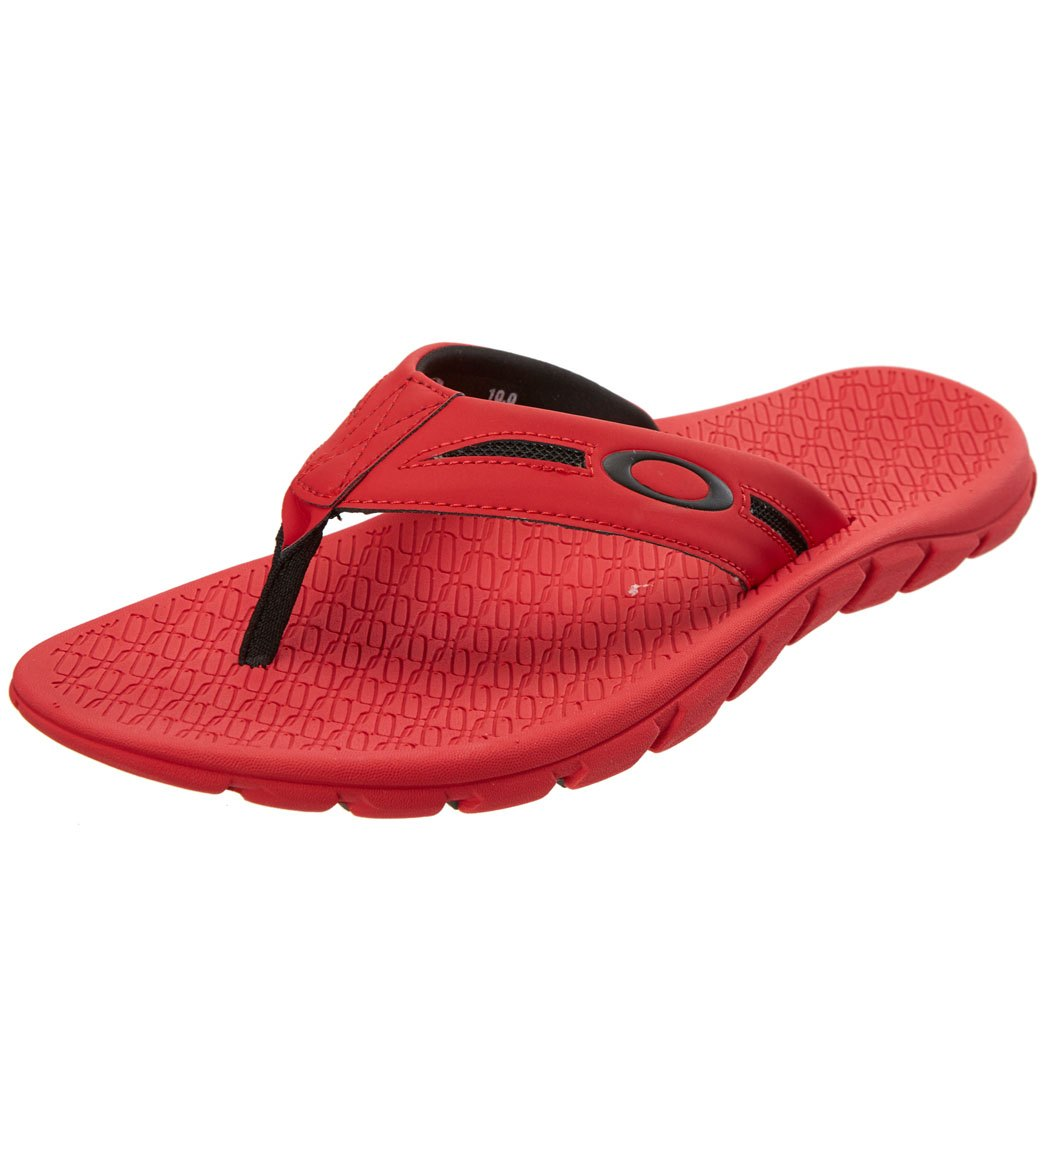 d6ce65b4f1ff Oakley Men s Operative 2.0 Flip Flop at SwimOutlet.com